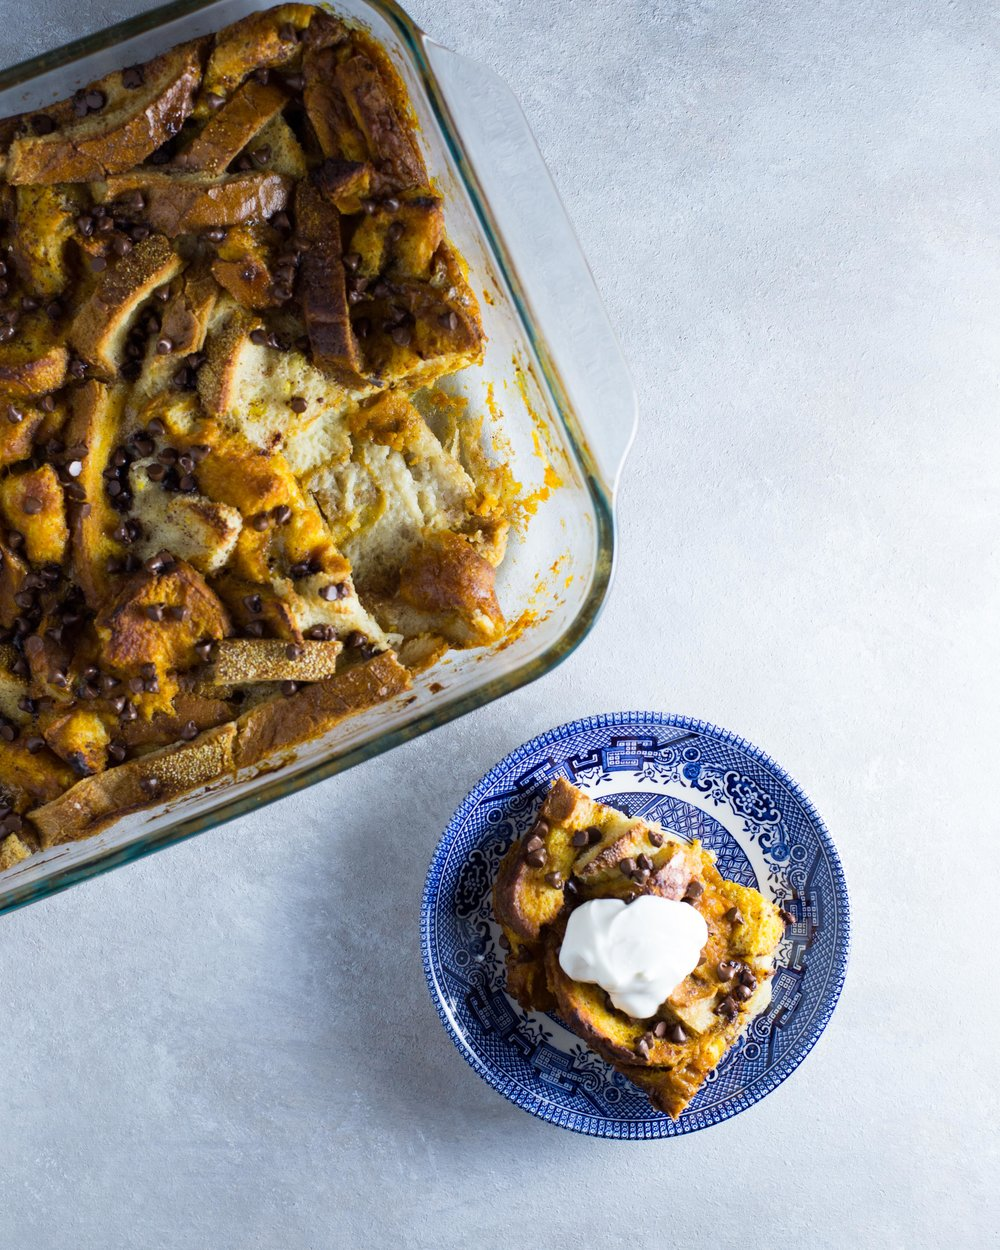 This sweet potato bread pudding is the perfect breakfast, brunch, or dessert dish!